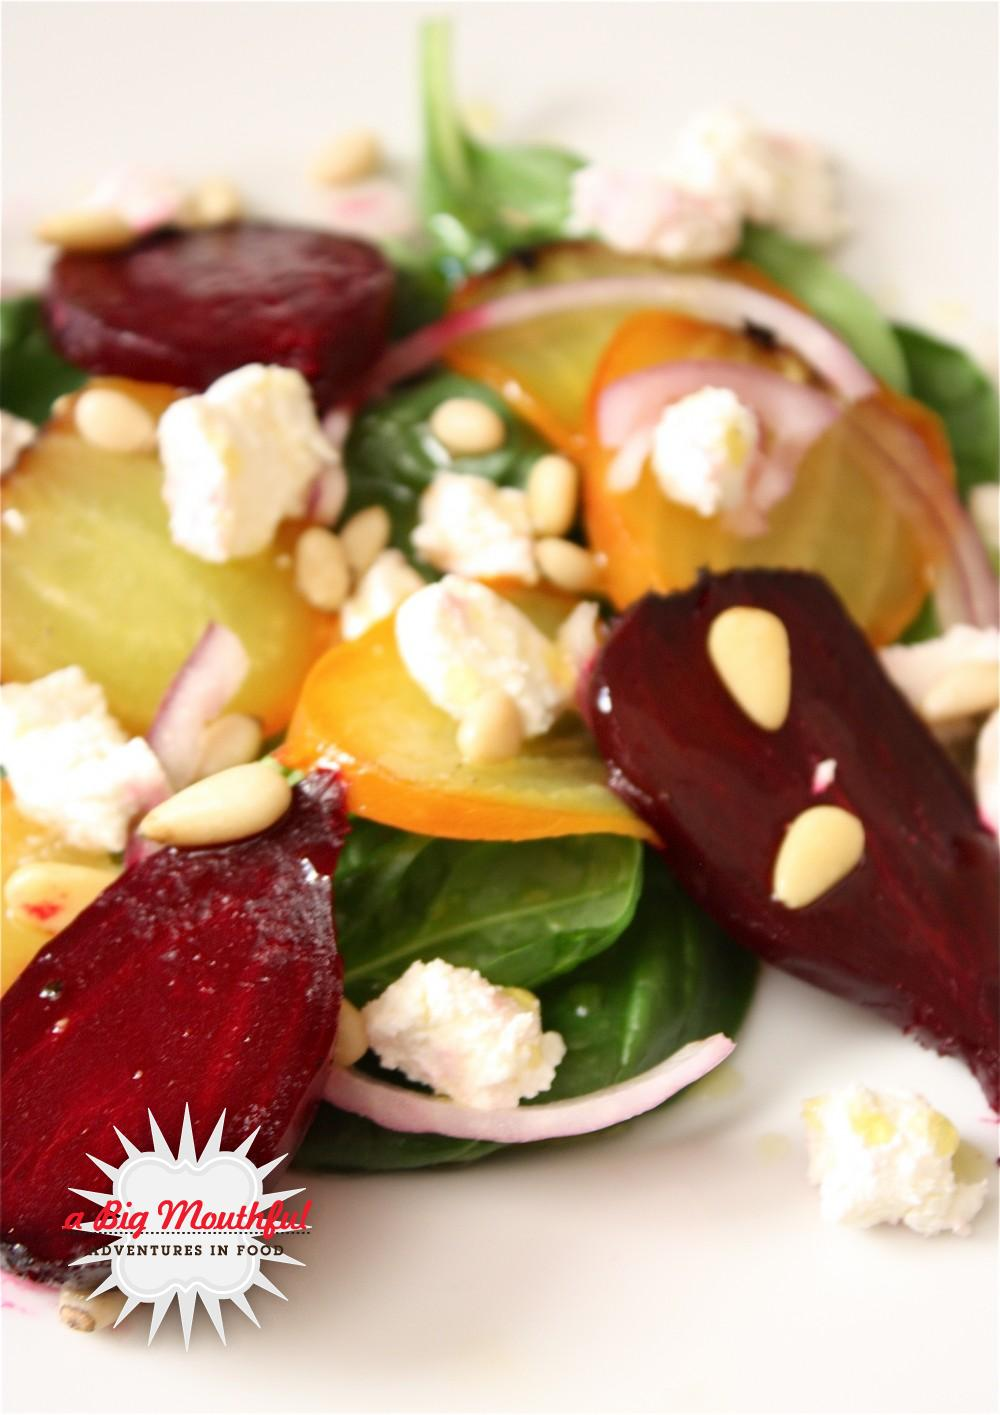 Big MouthfulBeet and Goat Cheese Salad - A Big Mouthful